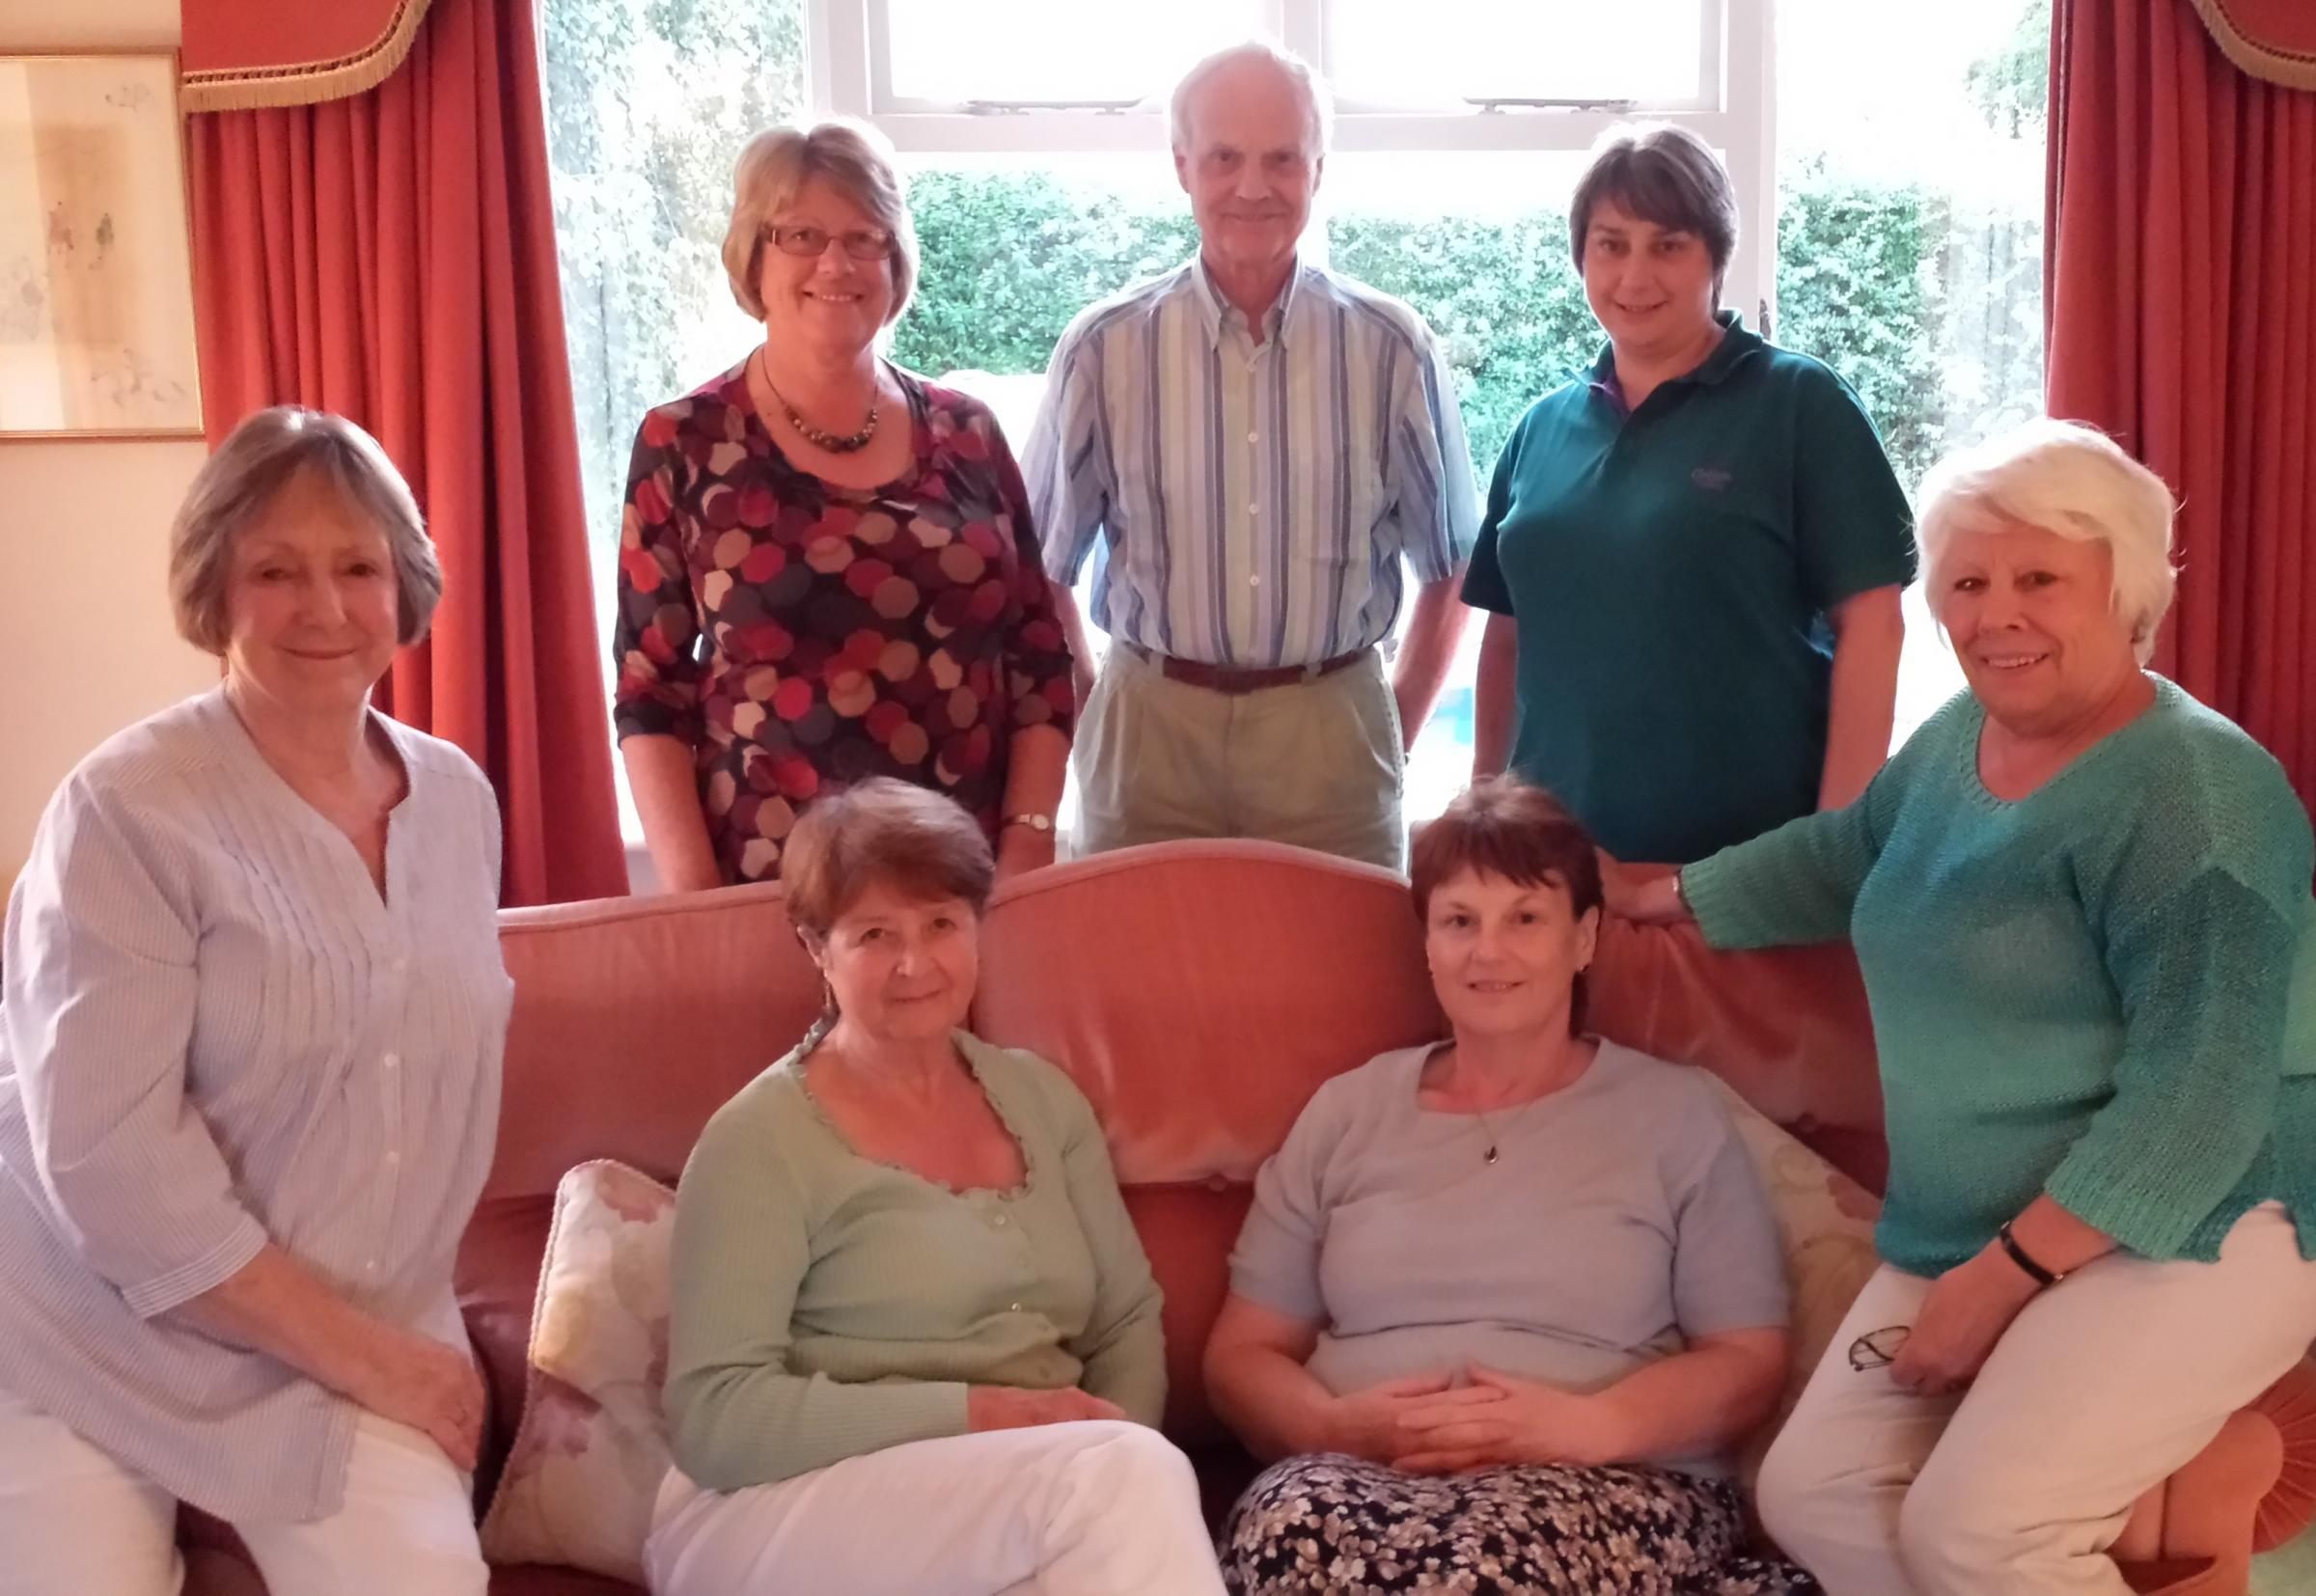 Macmillan Cancer Support's Vale of Evesham Fundraising Group.